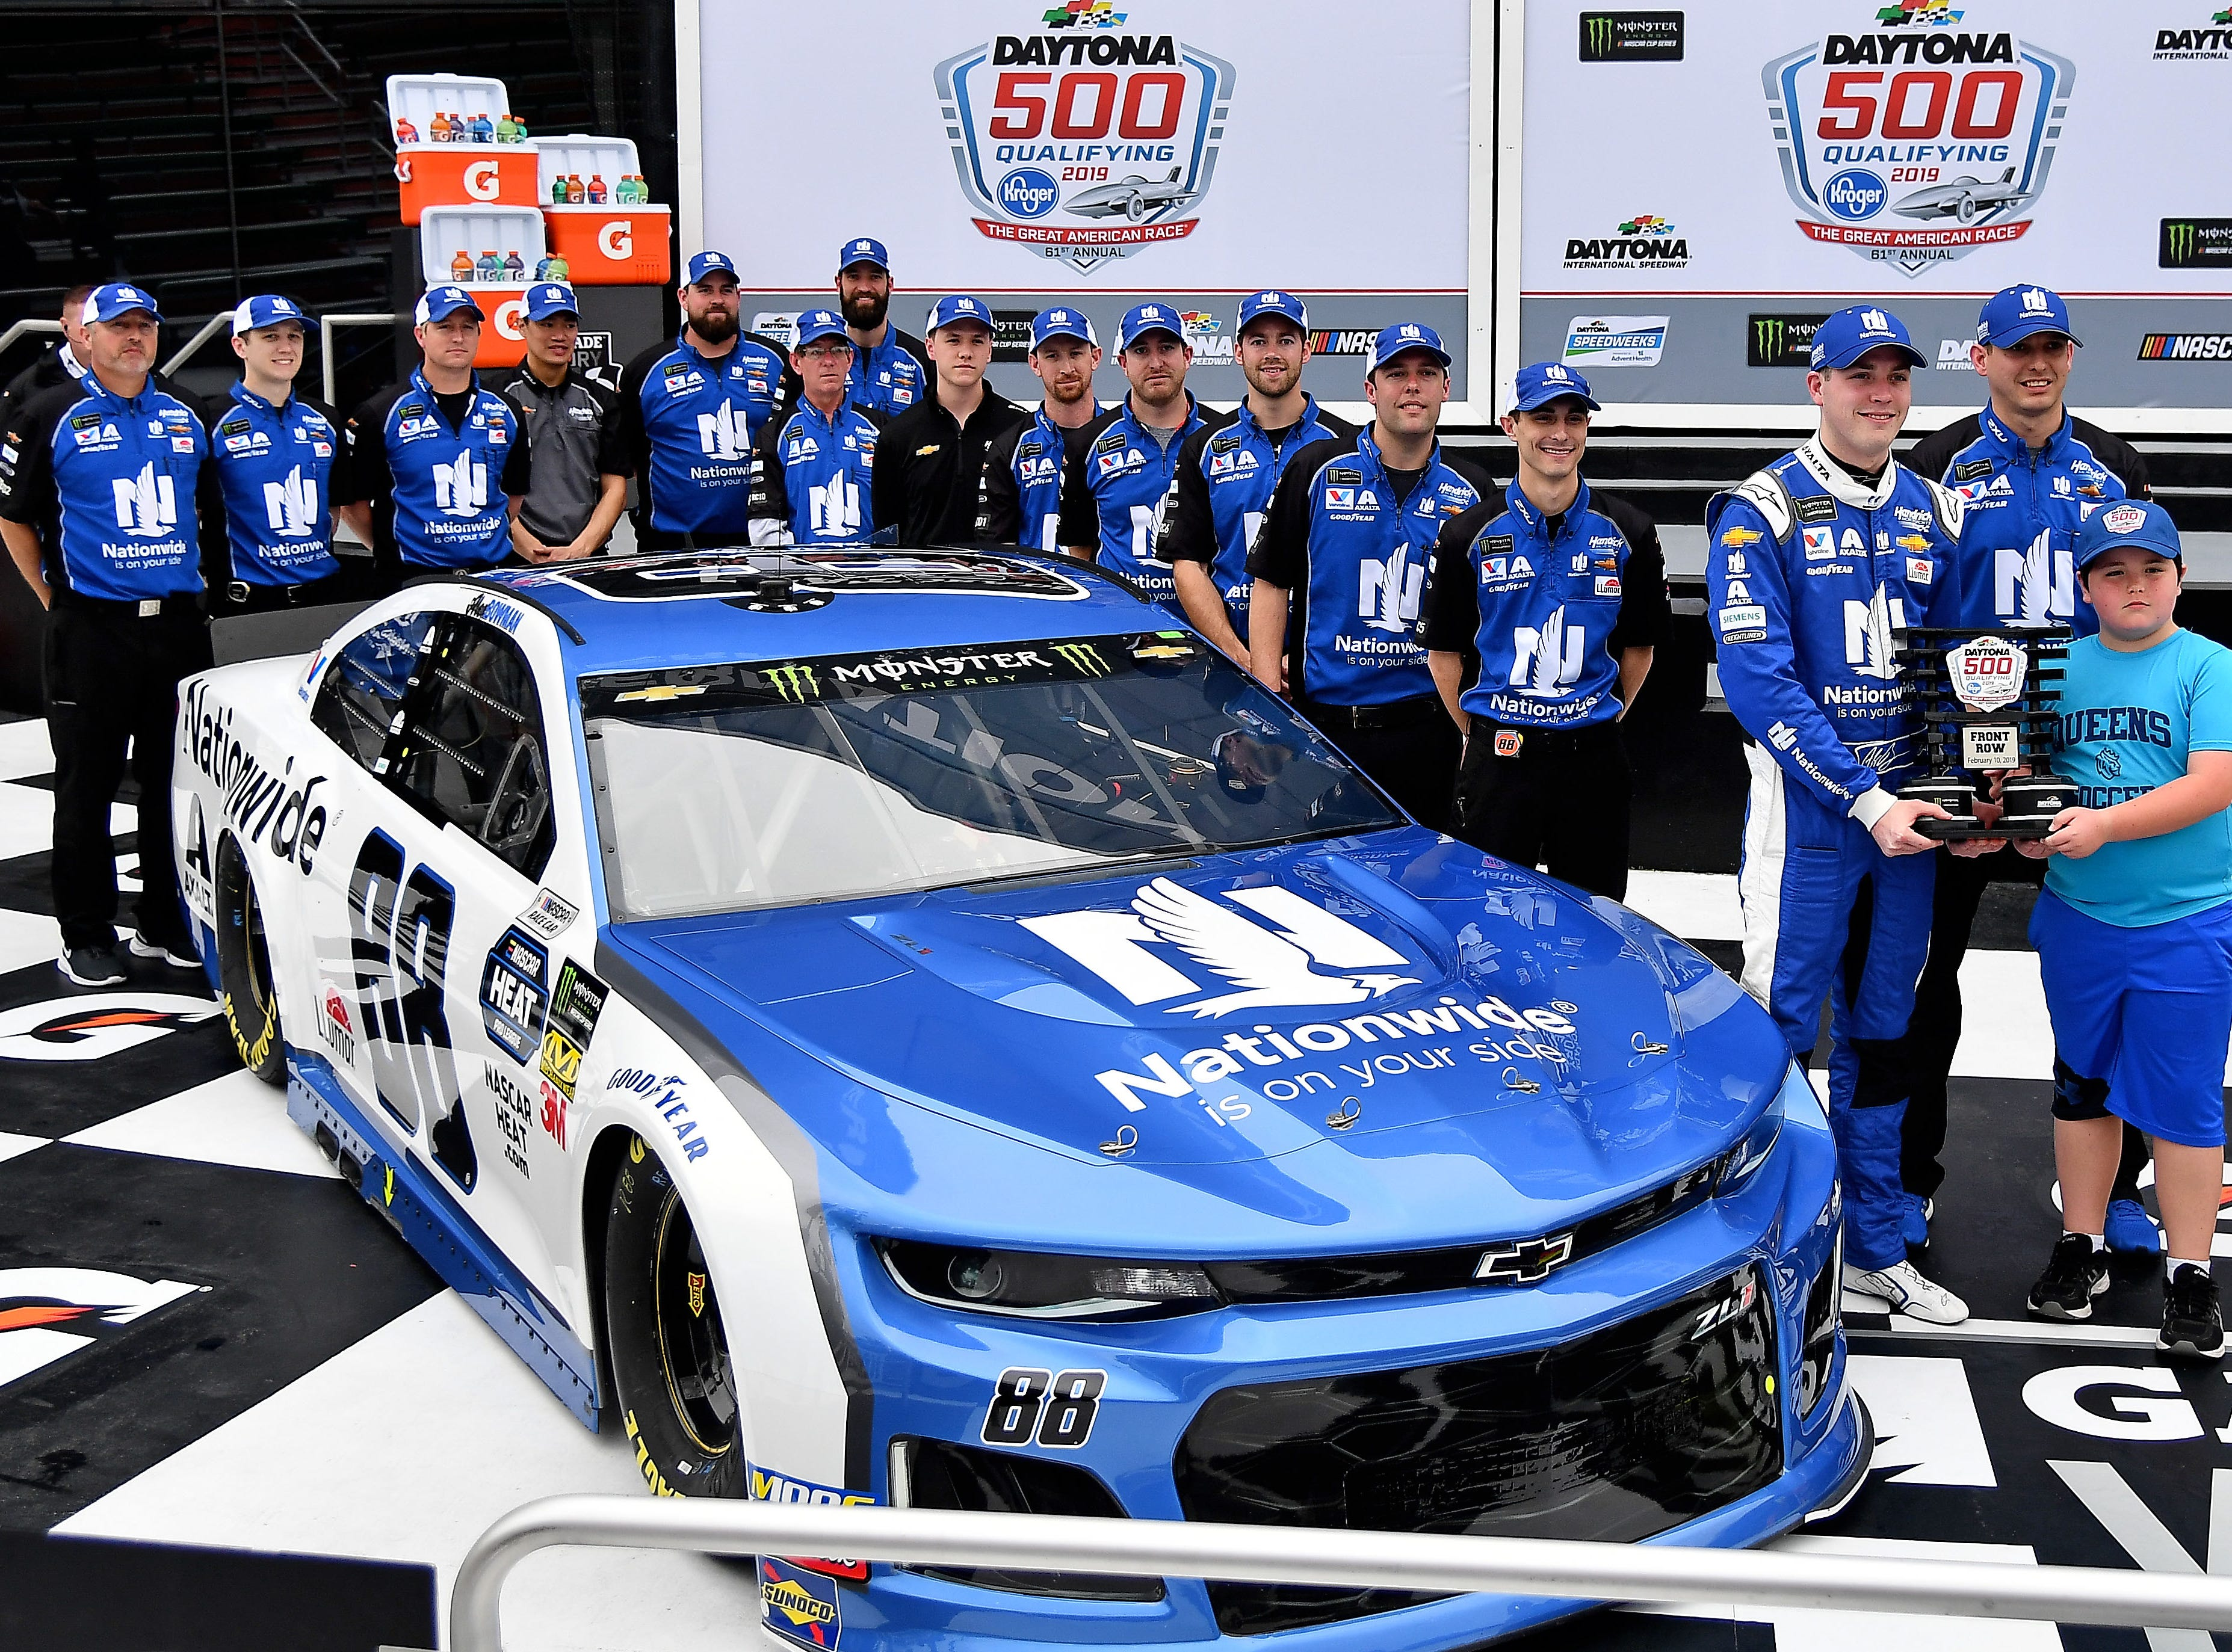 Feb 10:  Alex Bowman and his No. 88 team pose after qualifying second for the 2019 Daytona 500. Bowman won the Daytona 500 pole last year.